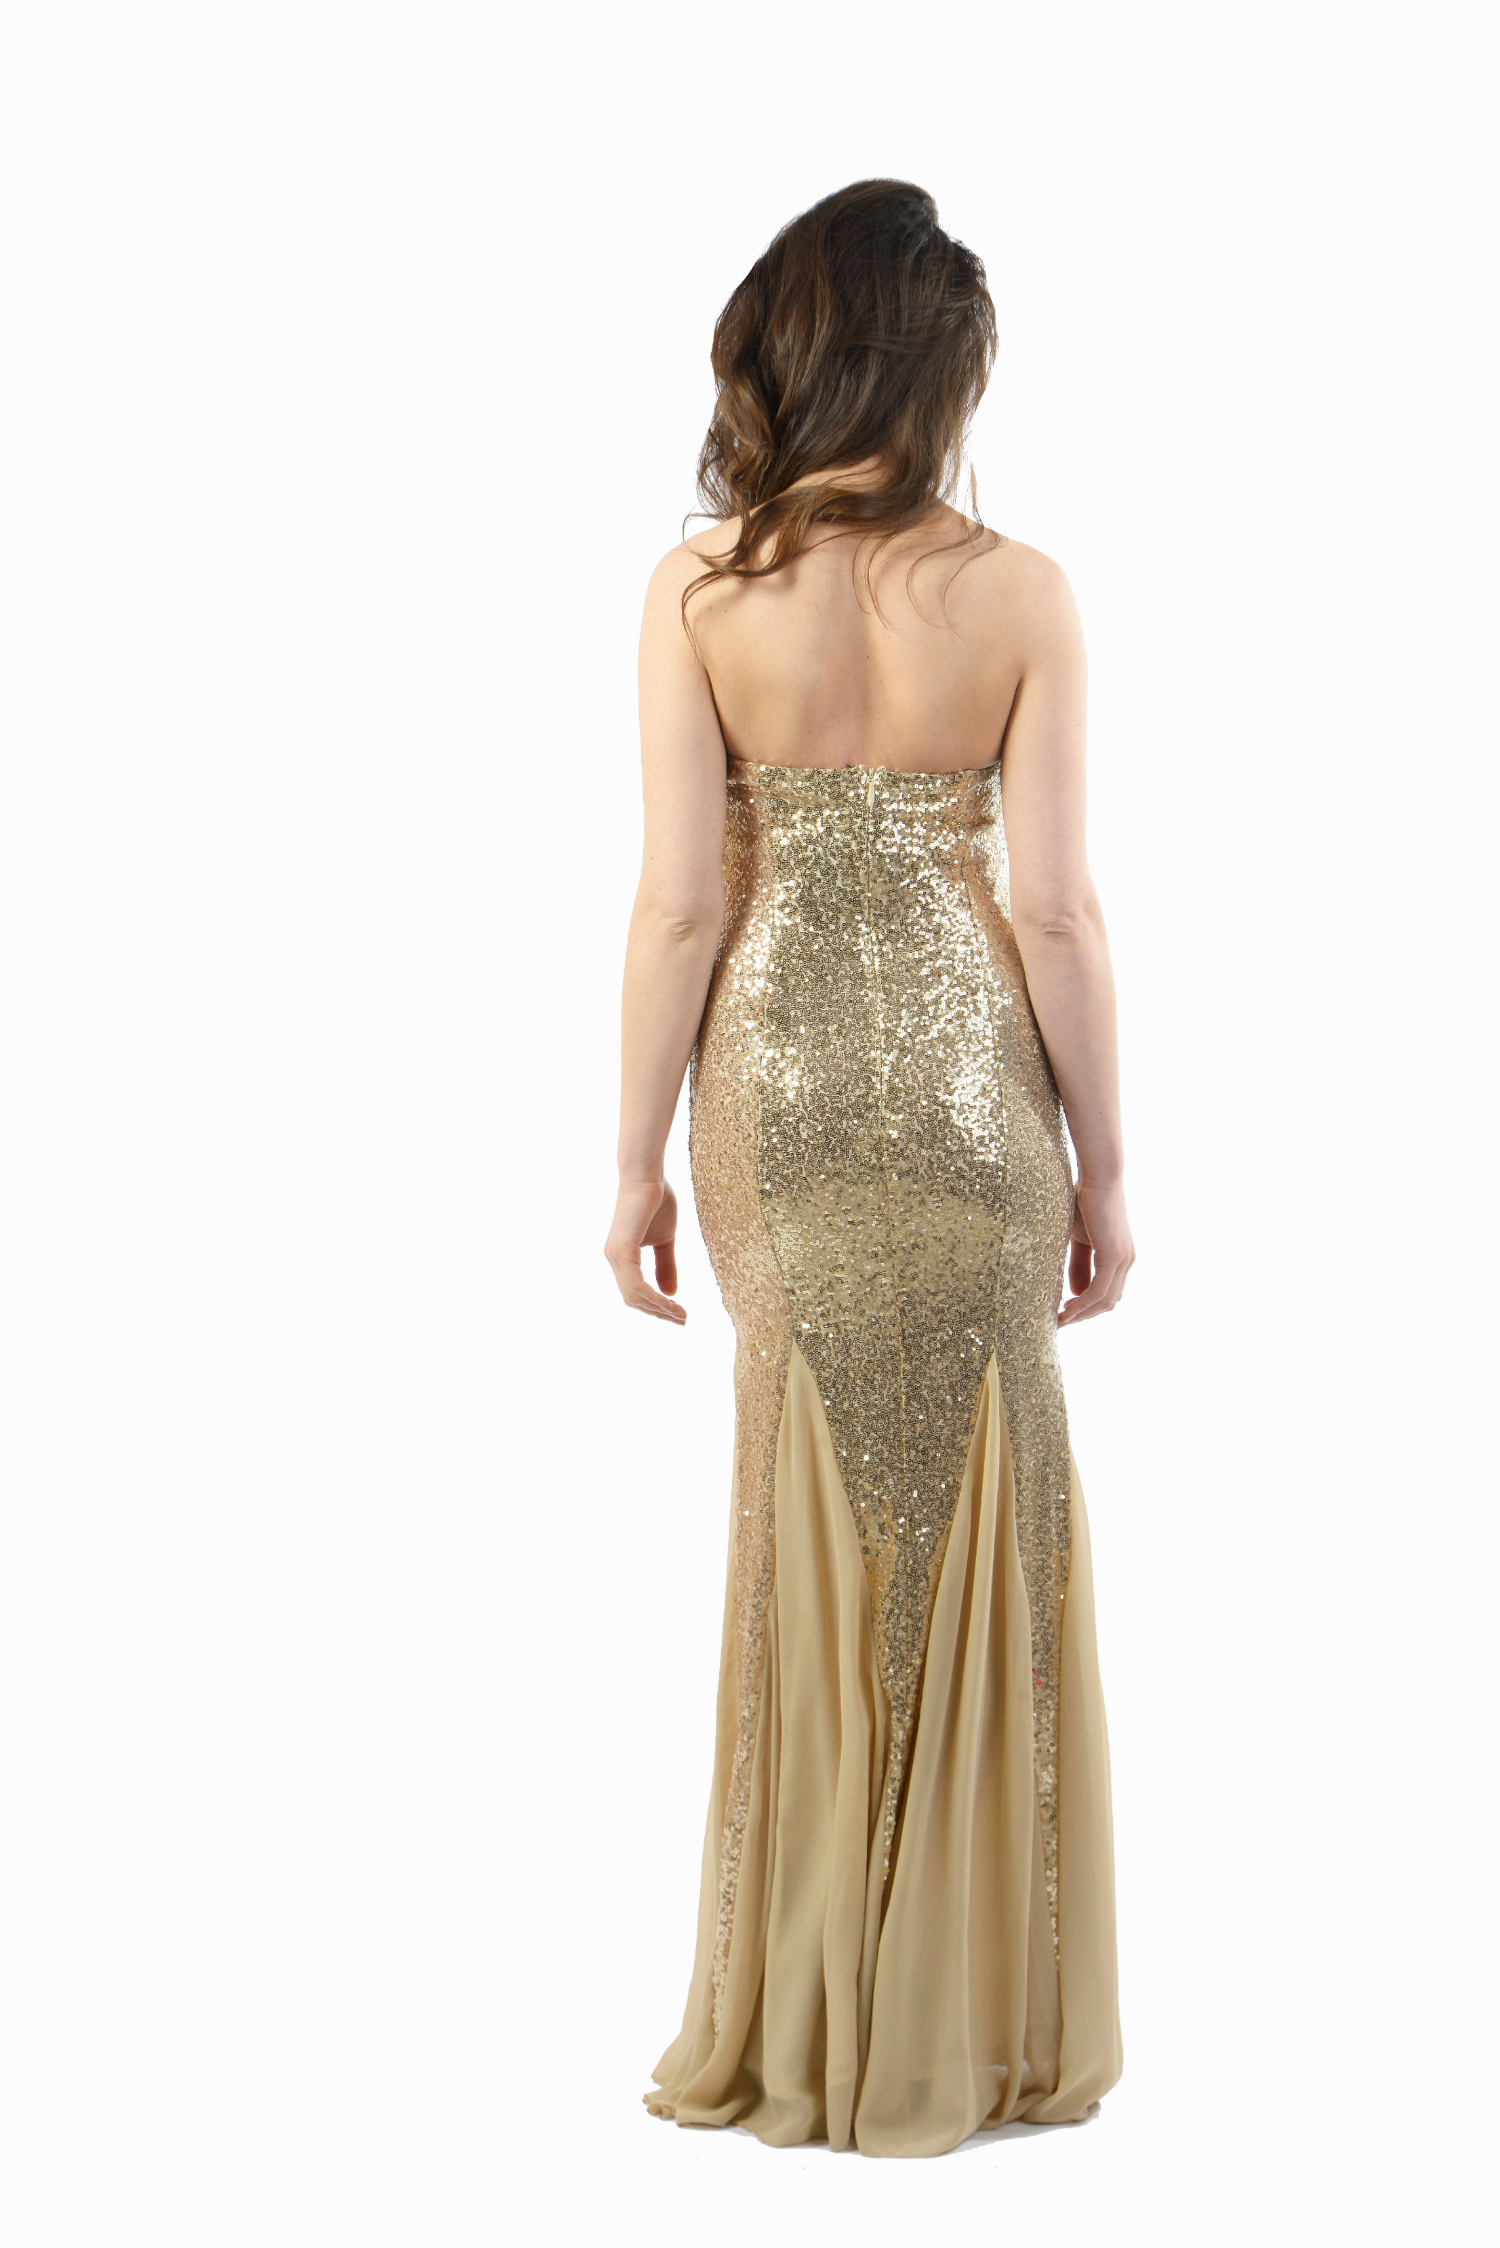 Nazz Collection Elisa Gold Dress